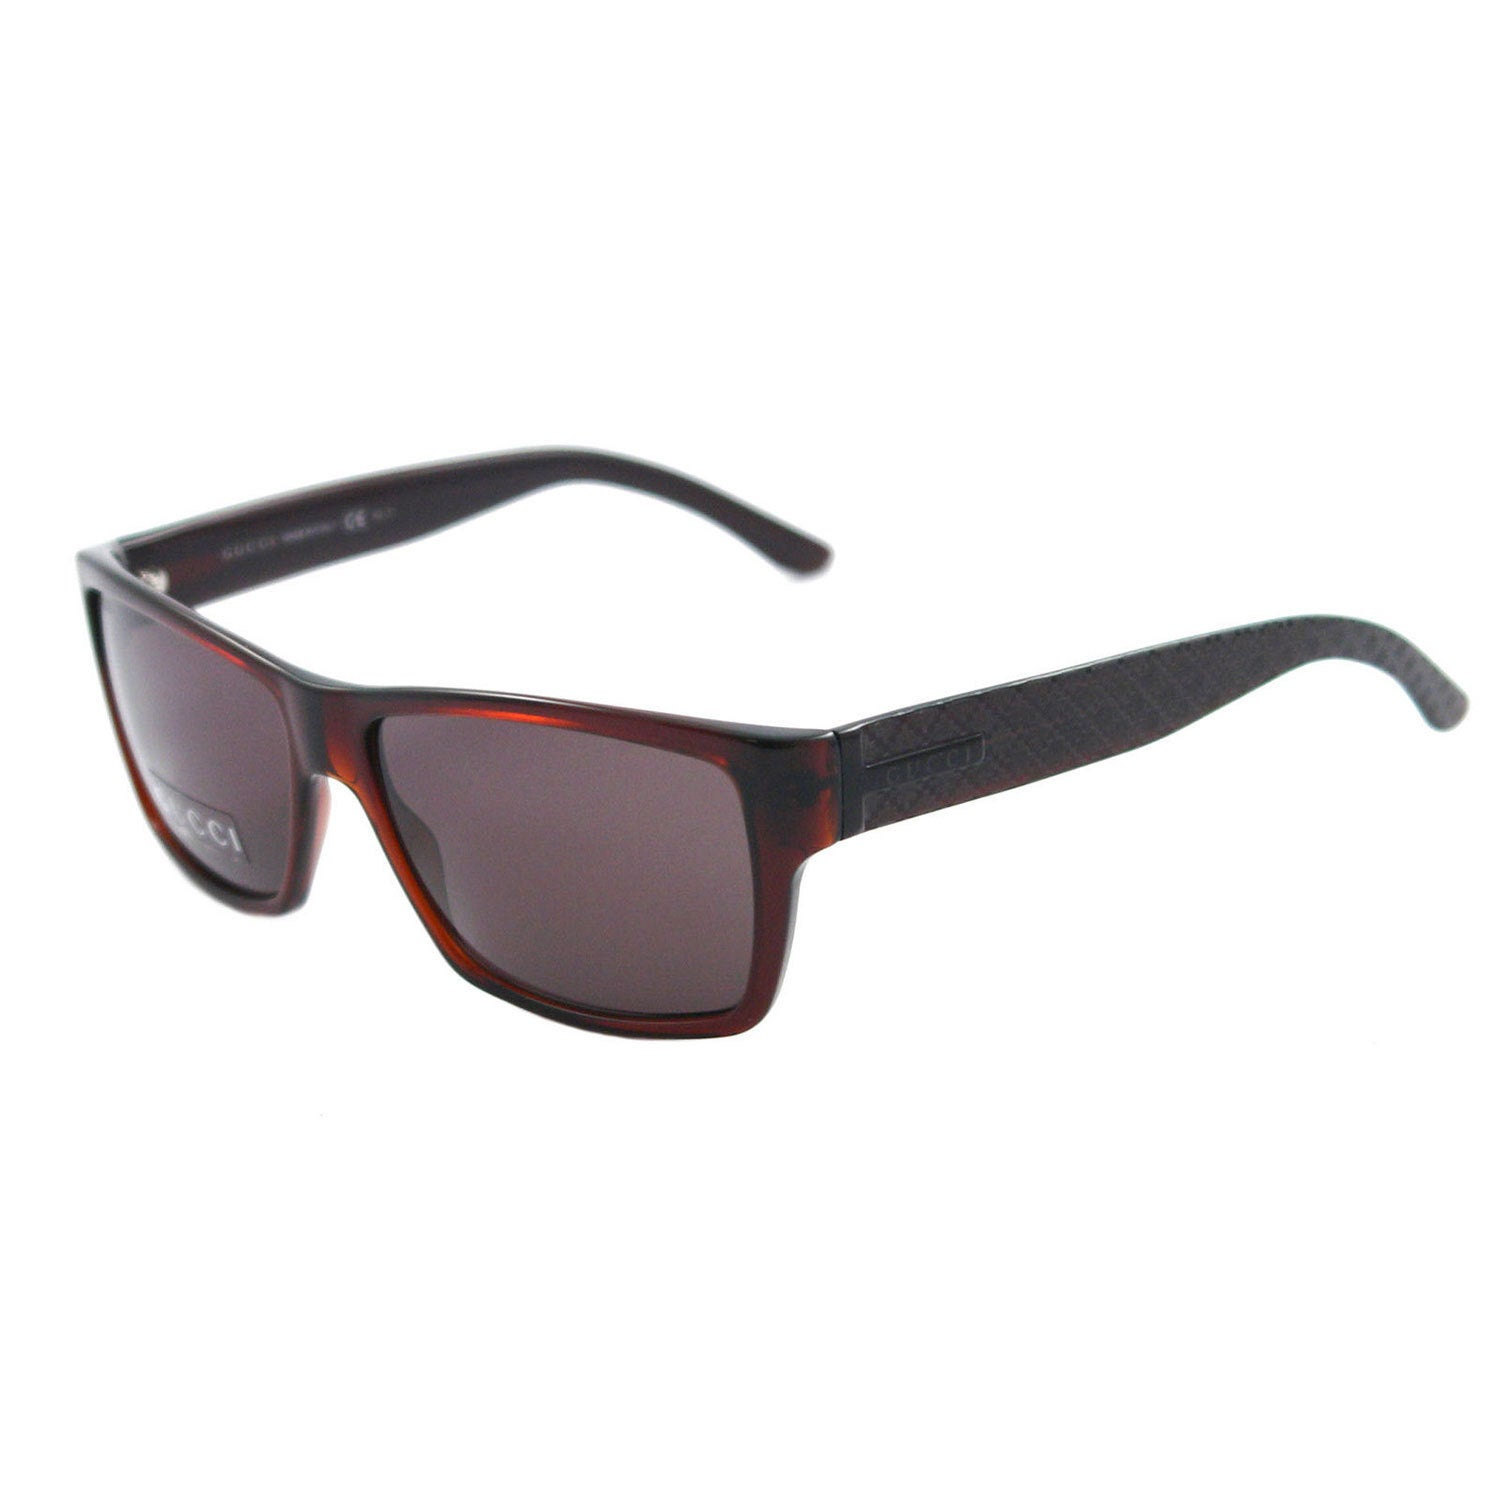 a8c649e038b Shop Gucci Men s  1000 S  Sunglasses - Free Shipping Today - Overstock -  8911680